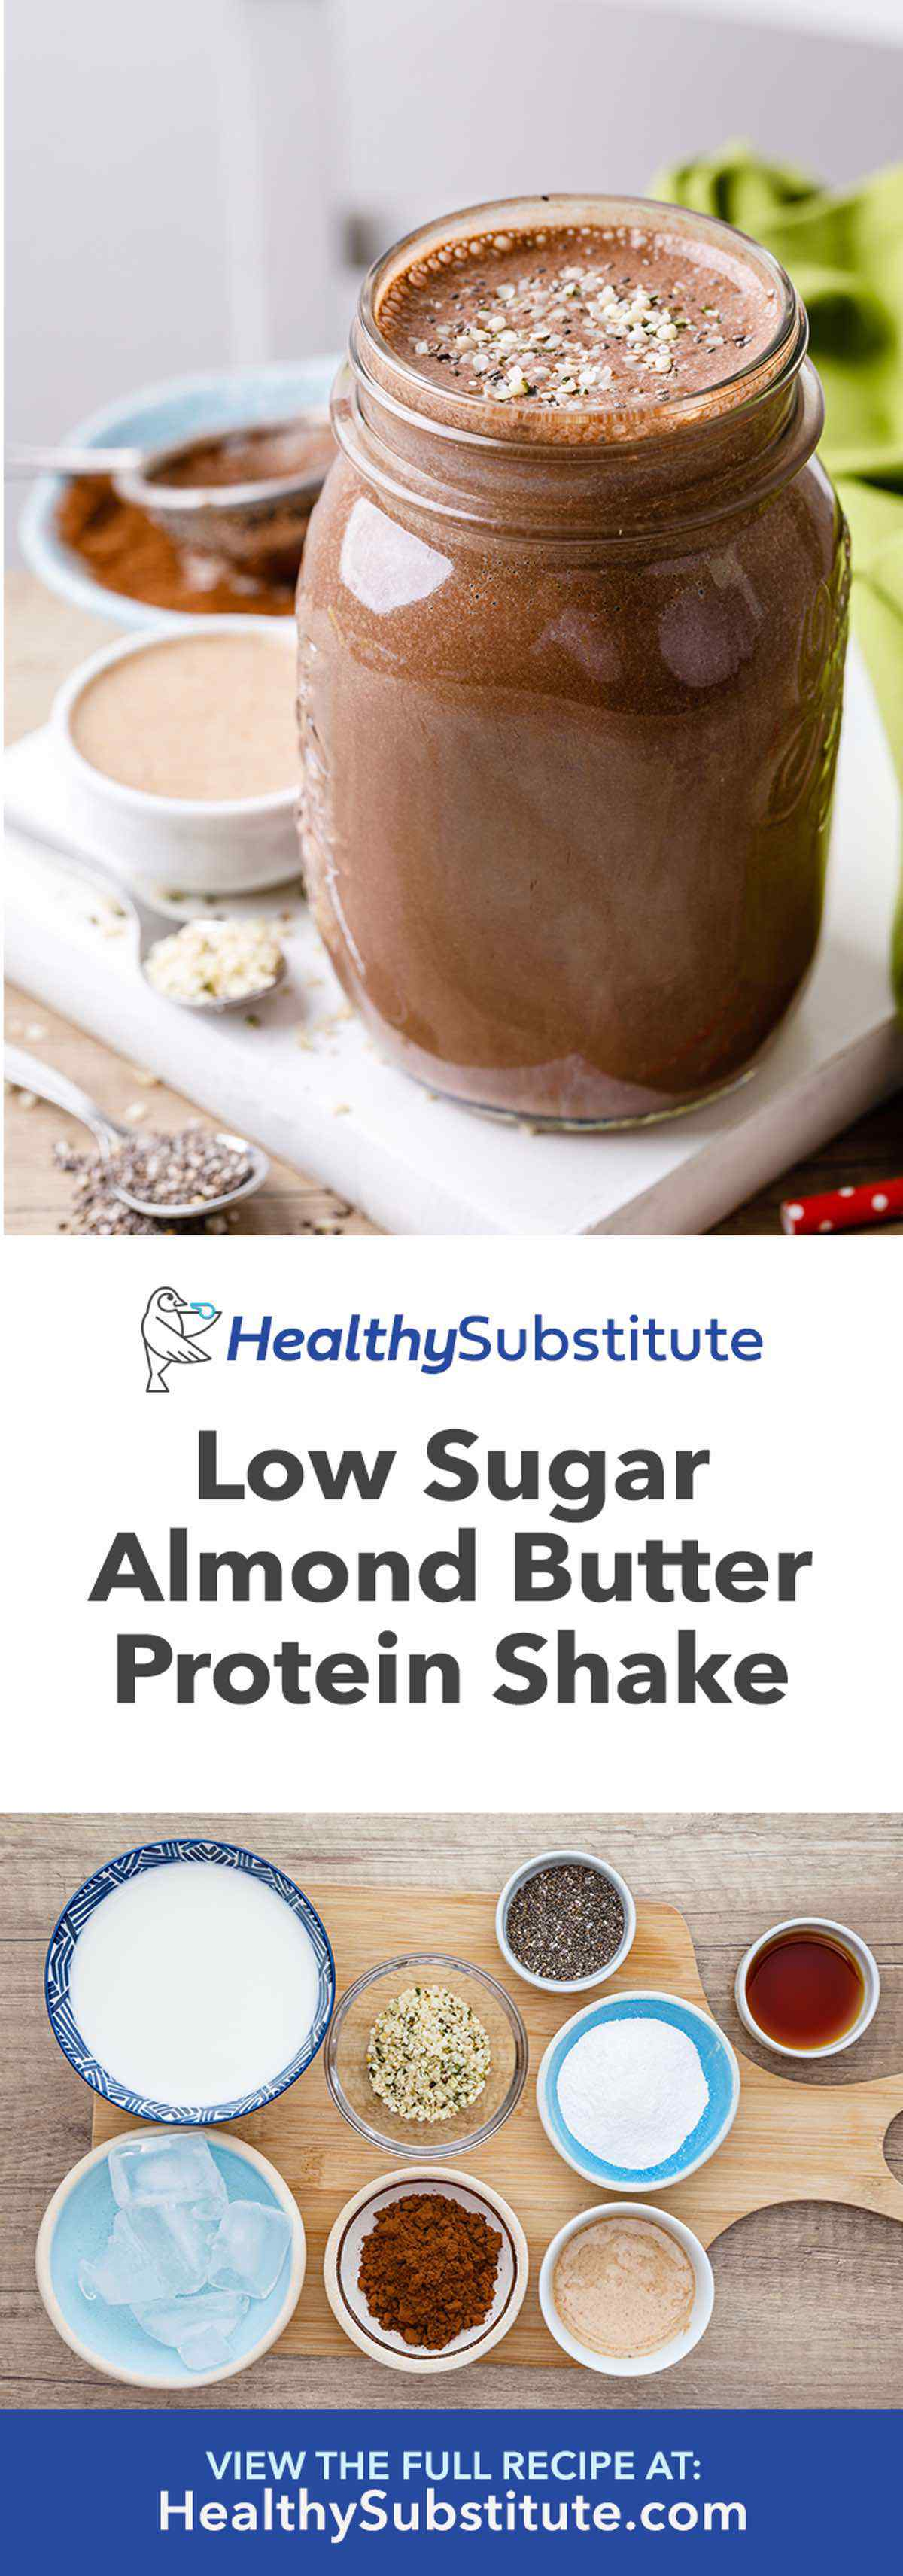 Low Sugar Almond Butter Paleo Protein Shake